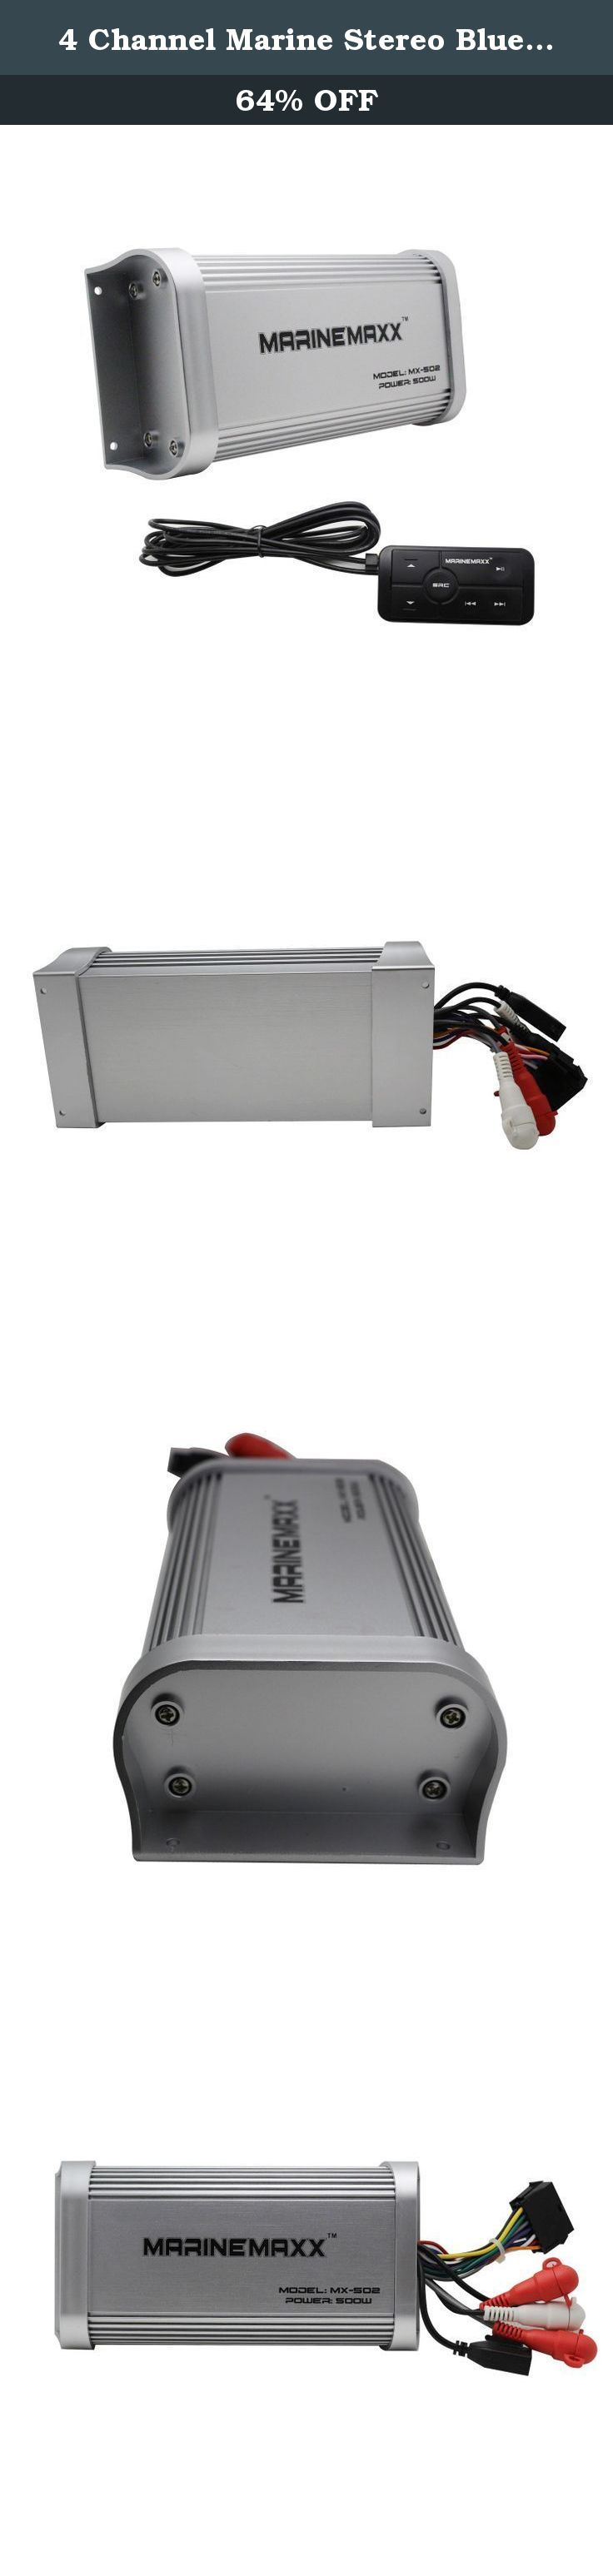 4 Channel Marine Stereo Bluetooth Amplifier USB AUX IN RCA Output Boat ATV UTV RZR. Features: *Weather Proof 500 W MAX Power, 4 Channel 94 W X 4 RMS @ 4 ohm *Full Range, Class A/B, Aux Input, Low Level Inputs, RCA Pre-amp Outputs *Bluetooth Audio Streaming - play music and apps like Spotify/Pandora wirelessly *Inline Multi-Function Illuminated Remote Specifications: BLUETOOTH: BT:3.0 BT Range: 33FT/10 M(Class 2) BT Profiles: A2DP AMPLIFIER: Channels:4 MAX Continuous Output: 500W(All…